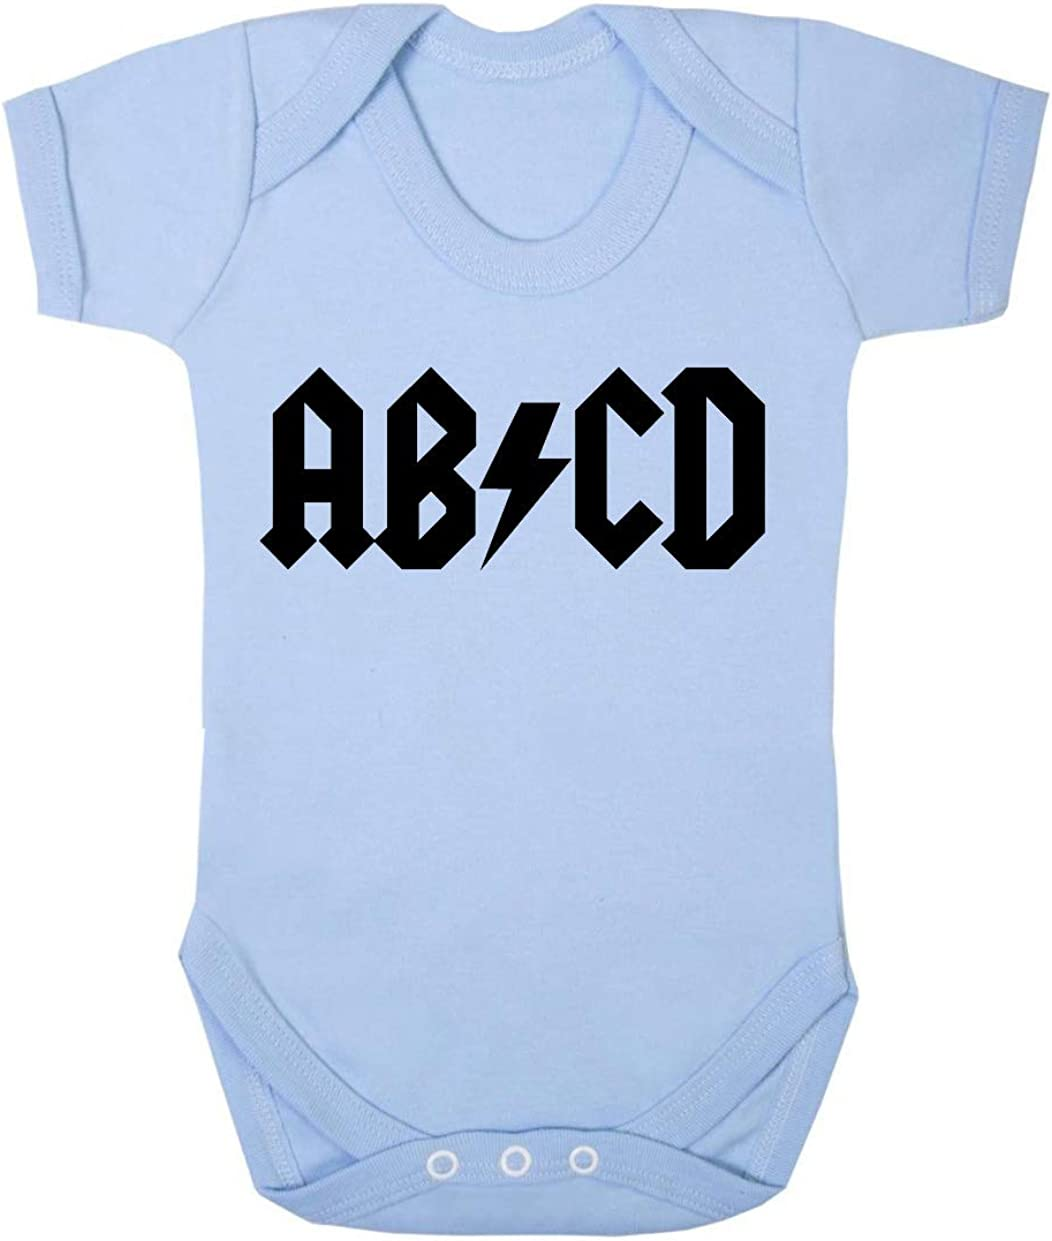 ABCD ACDC baby bodysuit cute baby bodysuit rock baby clothes funny baby bodysuit baby shower gift Music Parody Baby Bodysuit